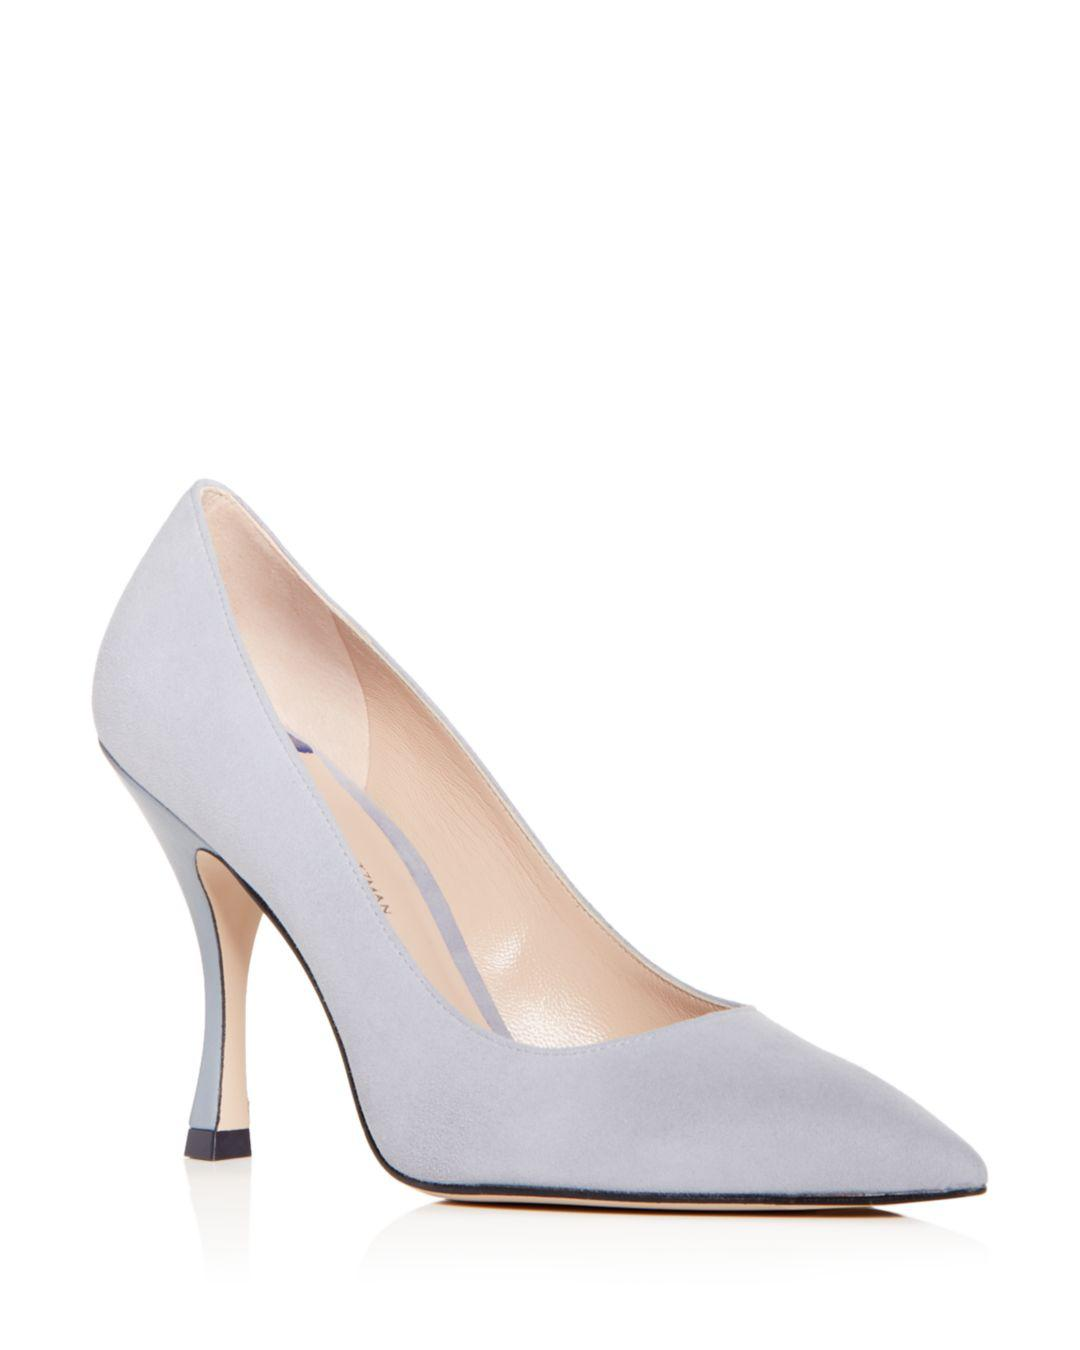 845965a597 Stuart Weitzman. Women's Tippi Suede Pointed Toe Court Shoes